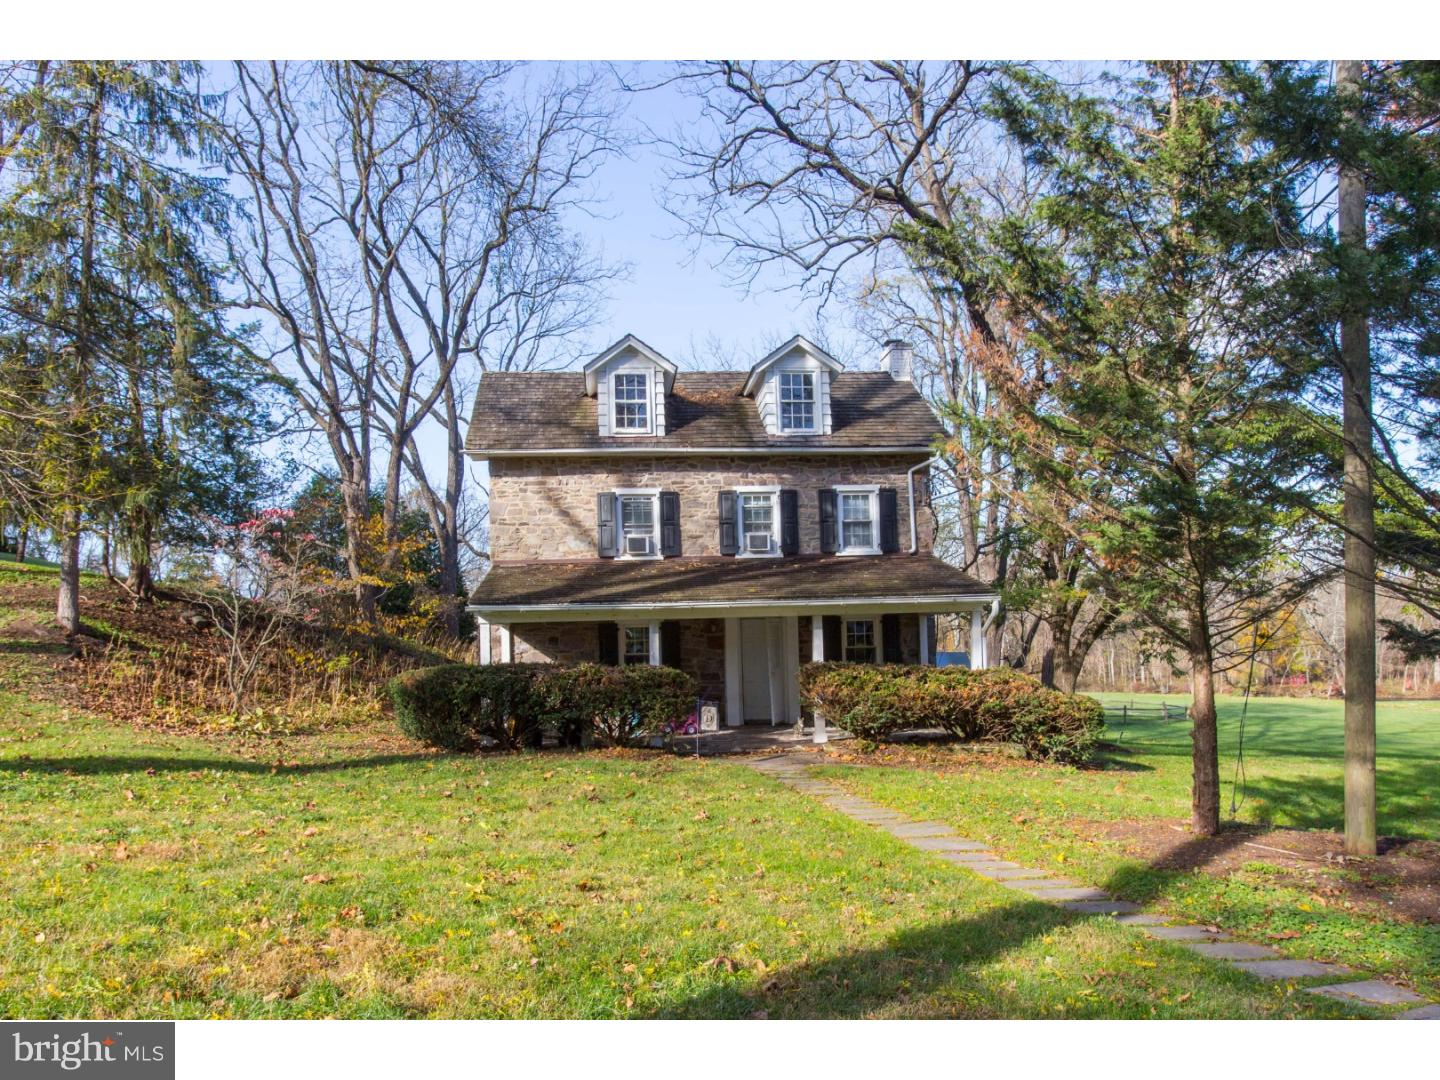 151 FORD ROAD, PHOENIXVILLE, PA 19460